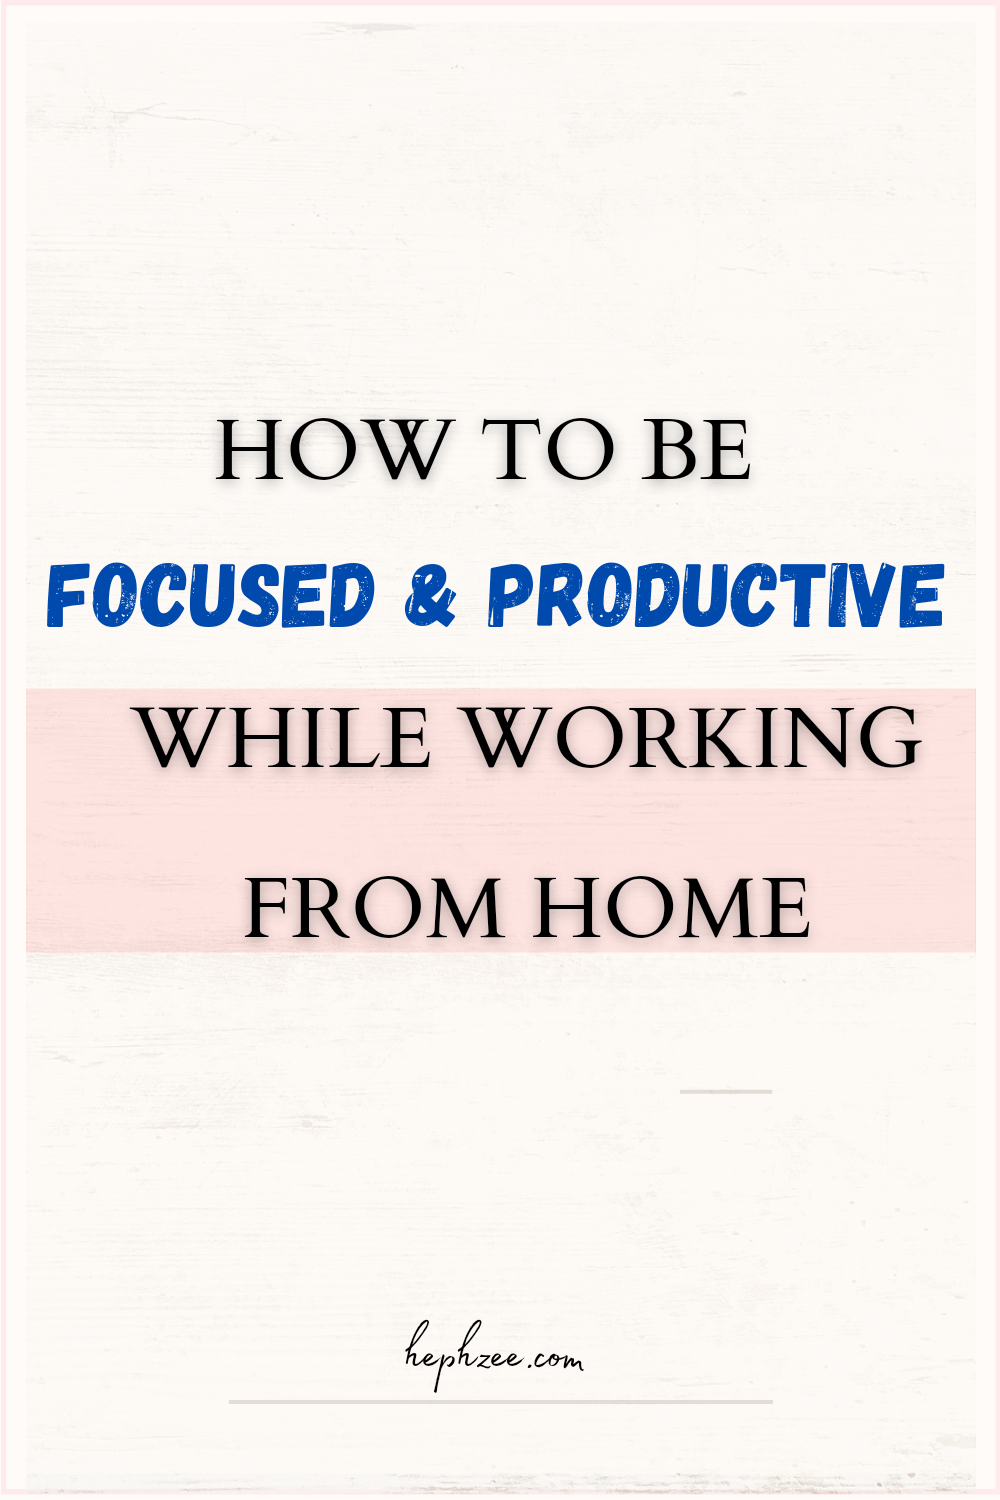 How to be focused and productive while working from home